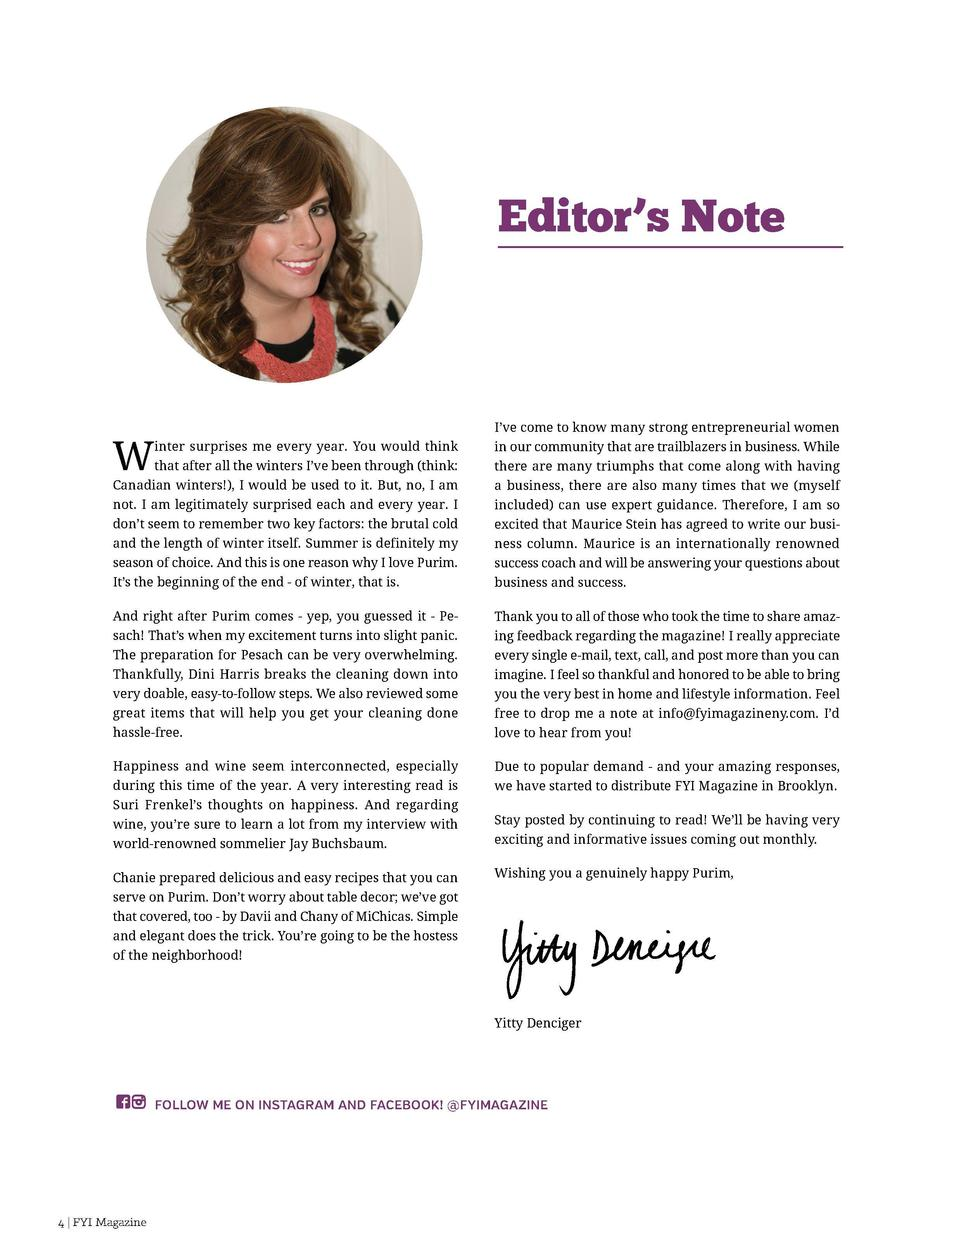 Letters to the Editor Editor   s Note Editor Yitty Denciger Art   Marketing Tzivia Cohen Sandbox Marketing  inter surprise...